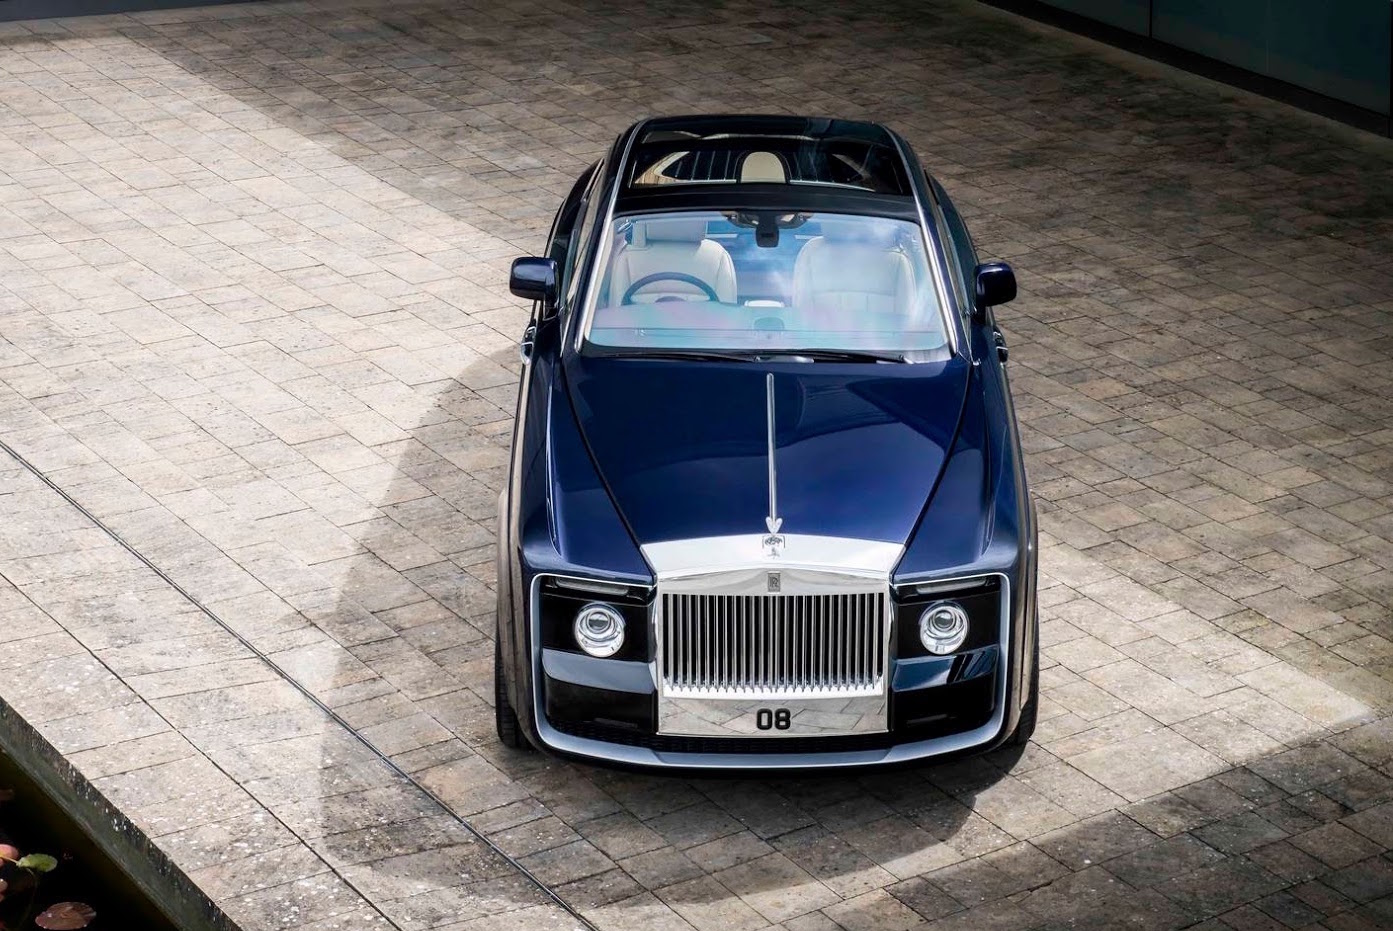 Rolls-Royce Sweptail is revealed and it is priced at QR 48 million